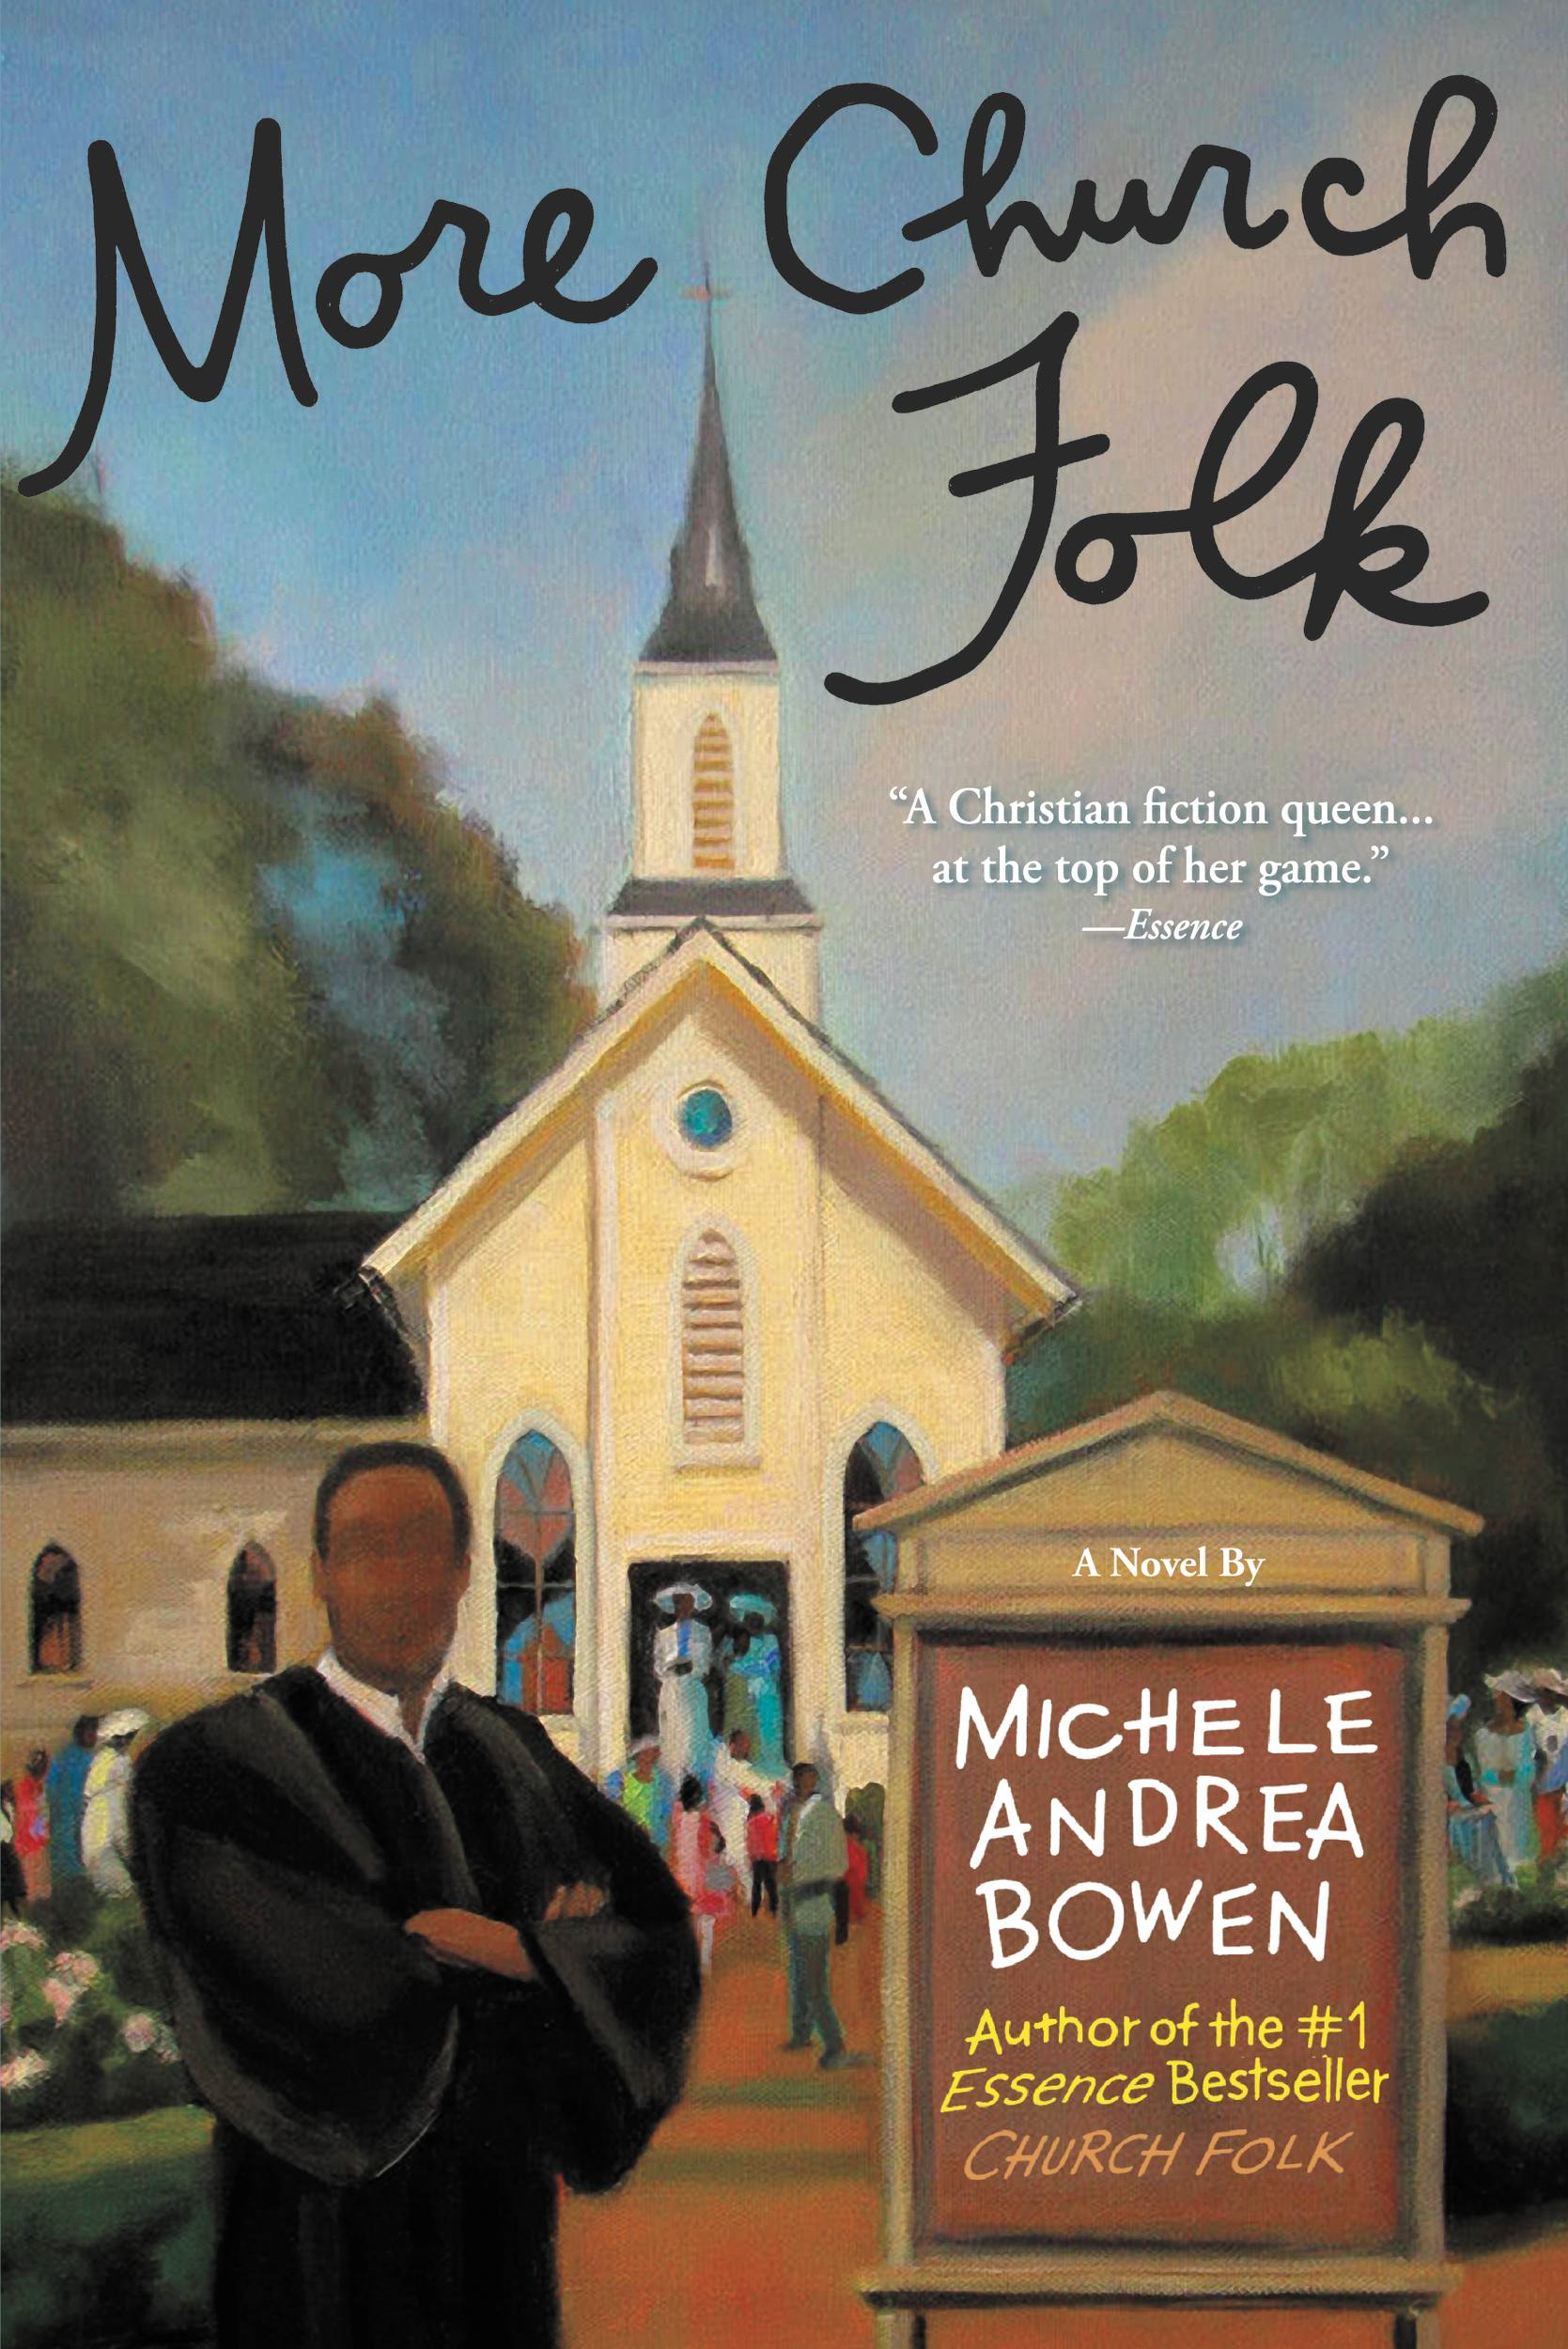 More Church Folk By: Michele Andrea Bowen